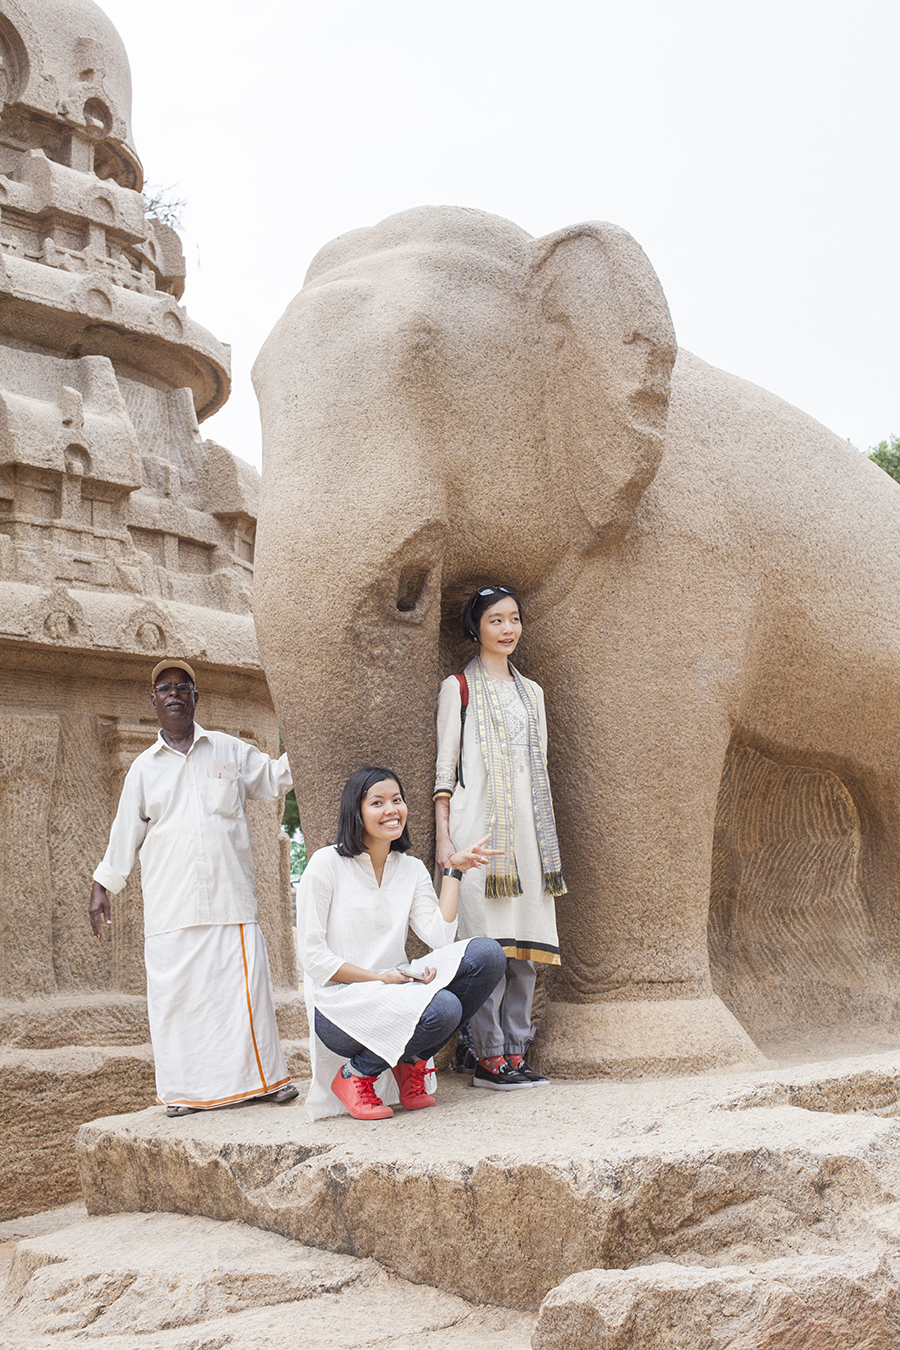 Photo of Shasha, Ren, and tour guide at the 5 Rathas, Mahabalipuram Chennai India.